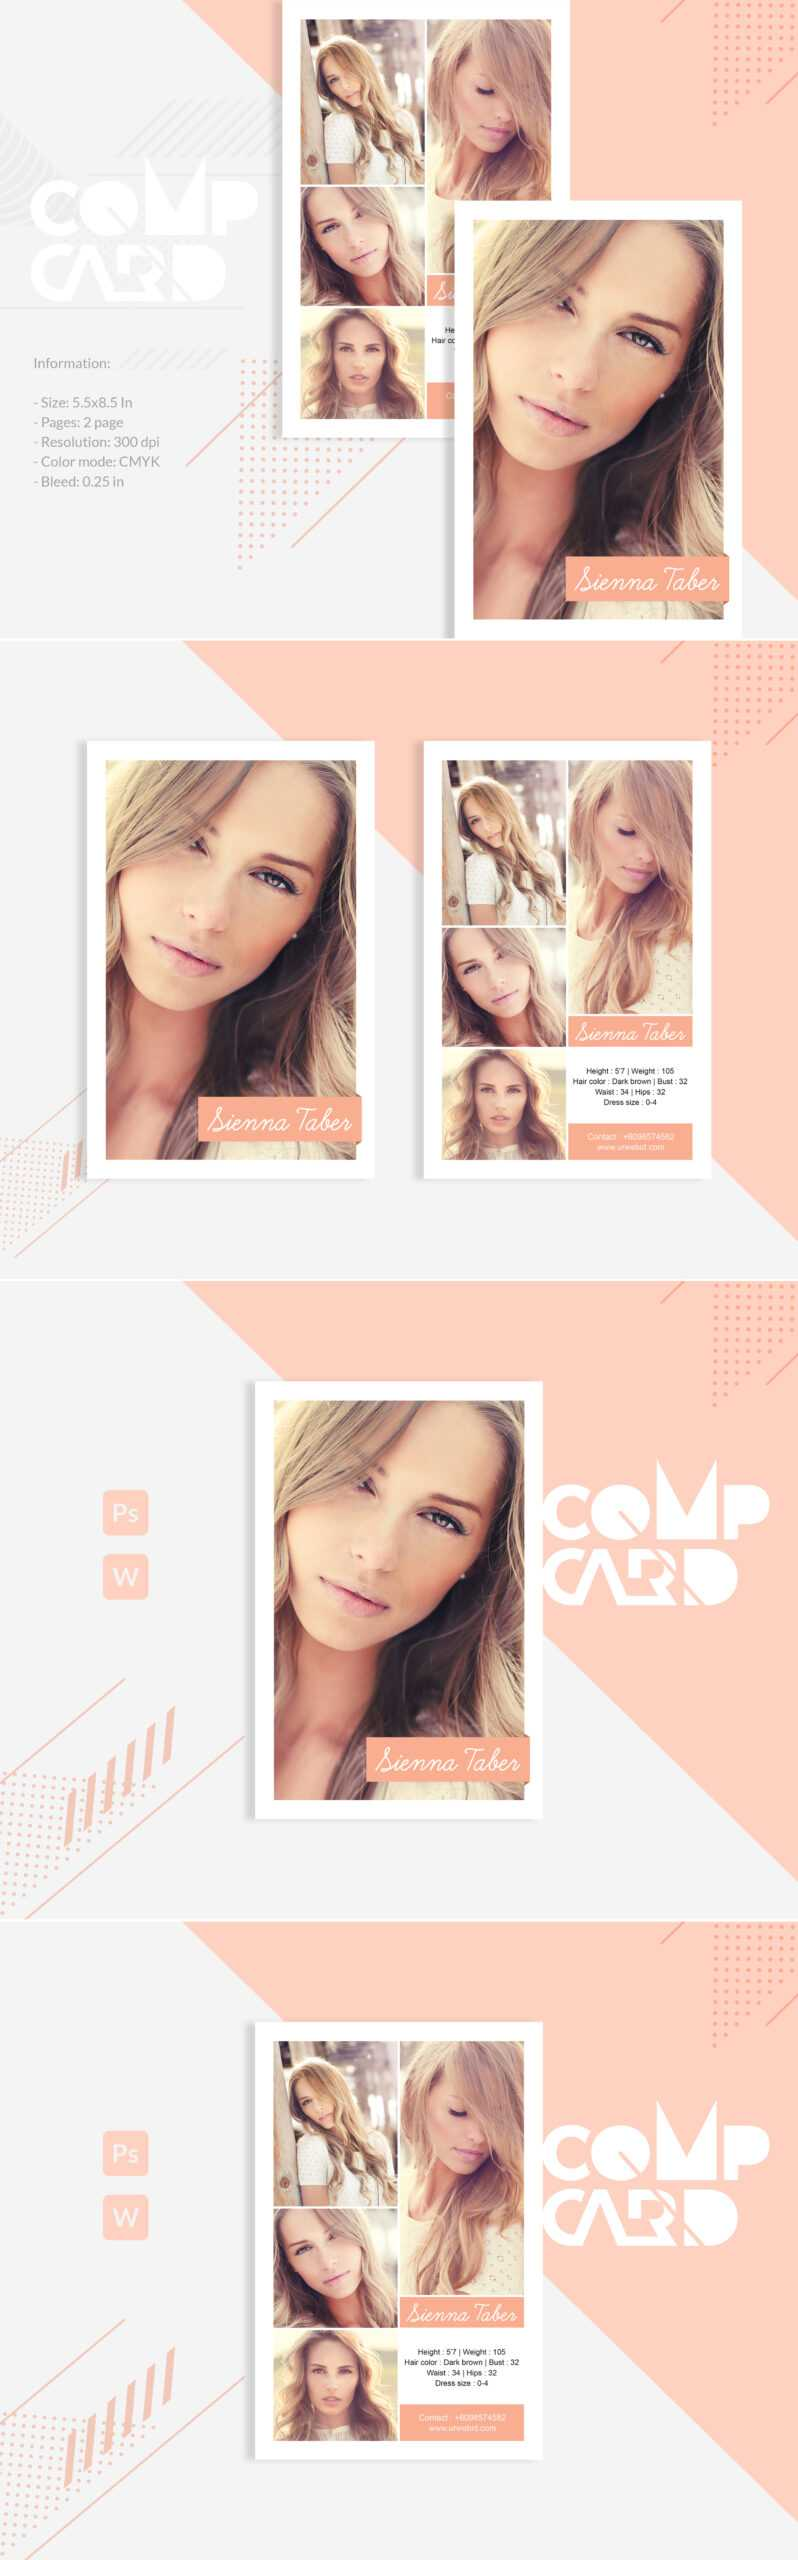 Sienna Taber - Modeling Comp Card Corporate Identity Template In Download Comp Card Template